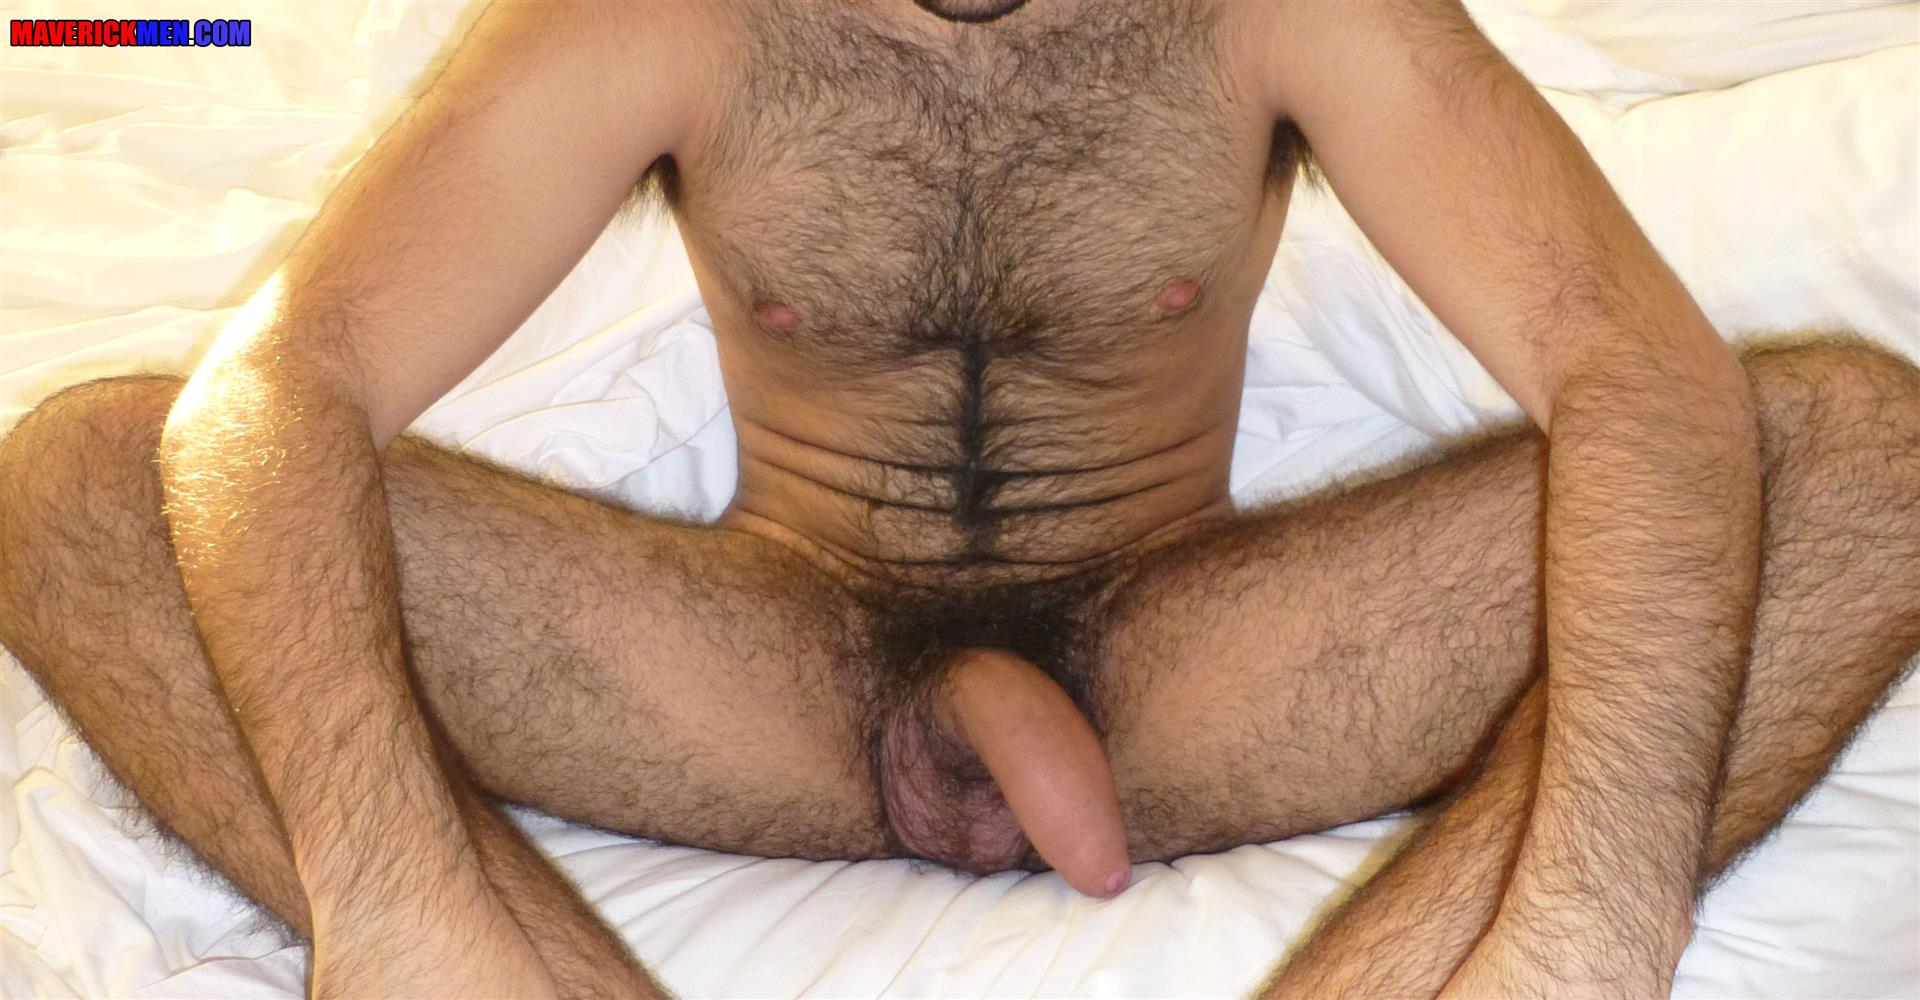 Daddies gay hairy mexican guys porn